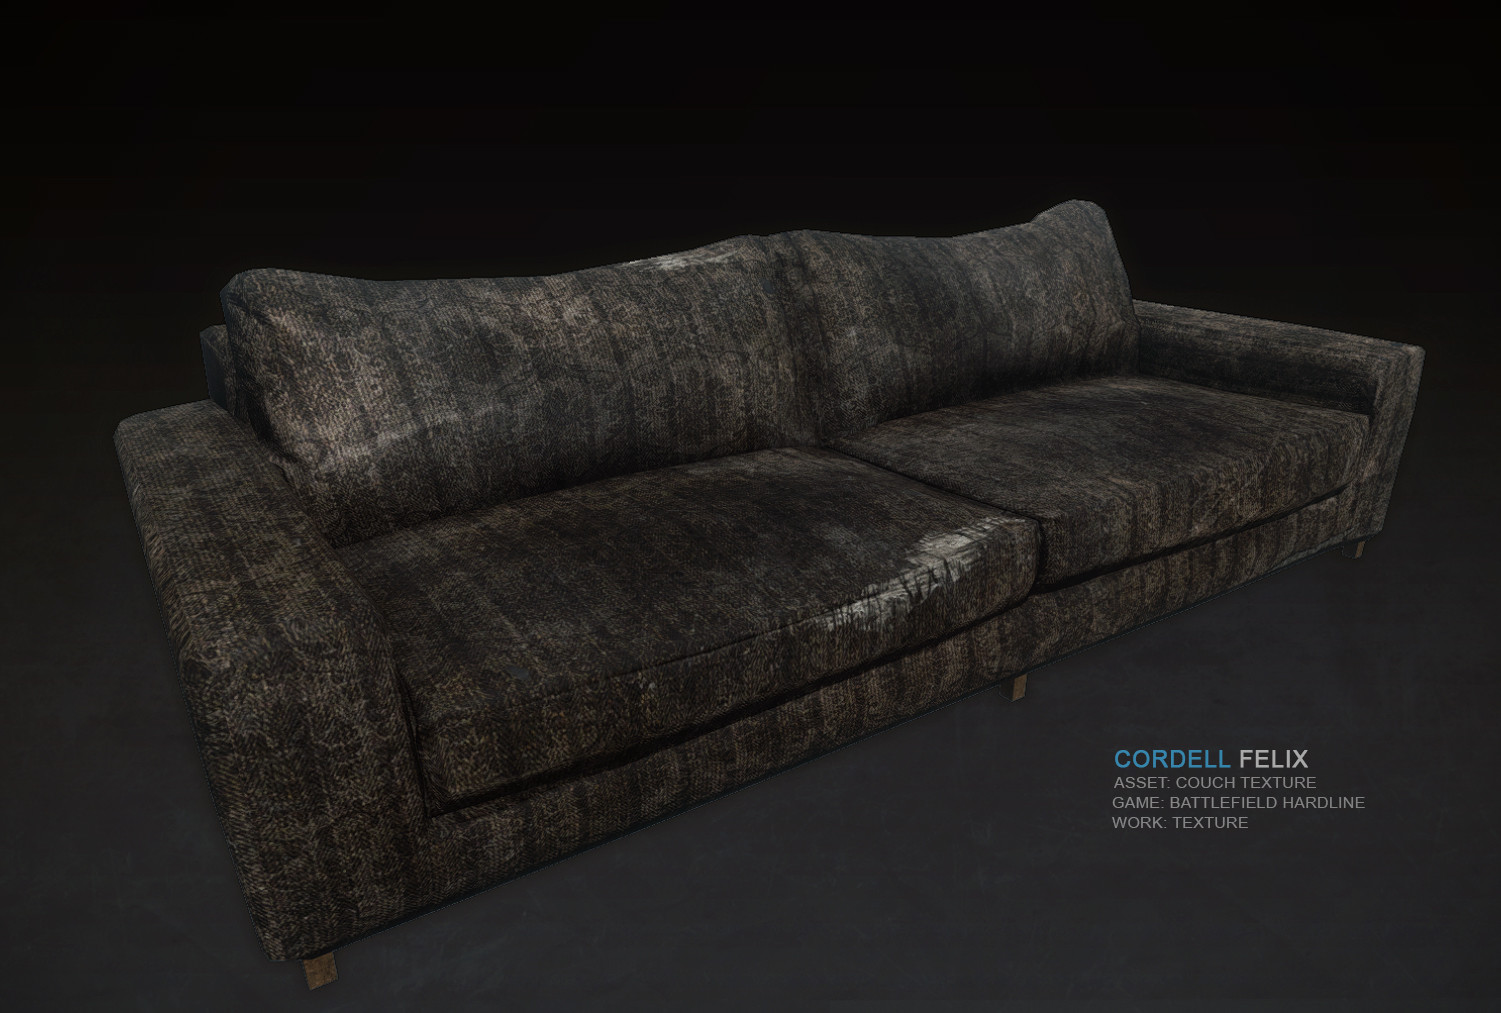 Cordell felix couch bfh